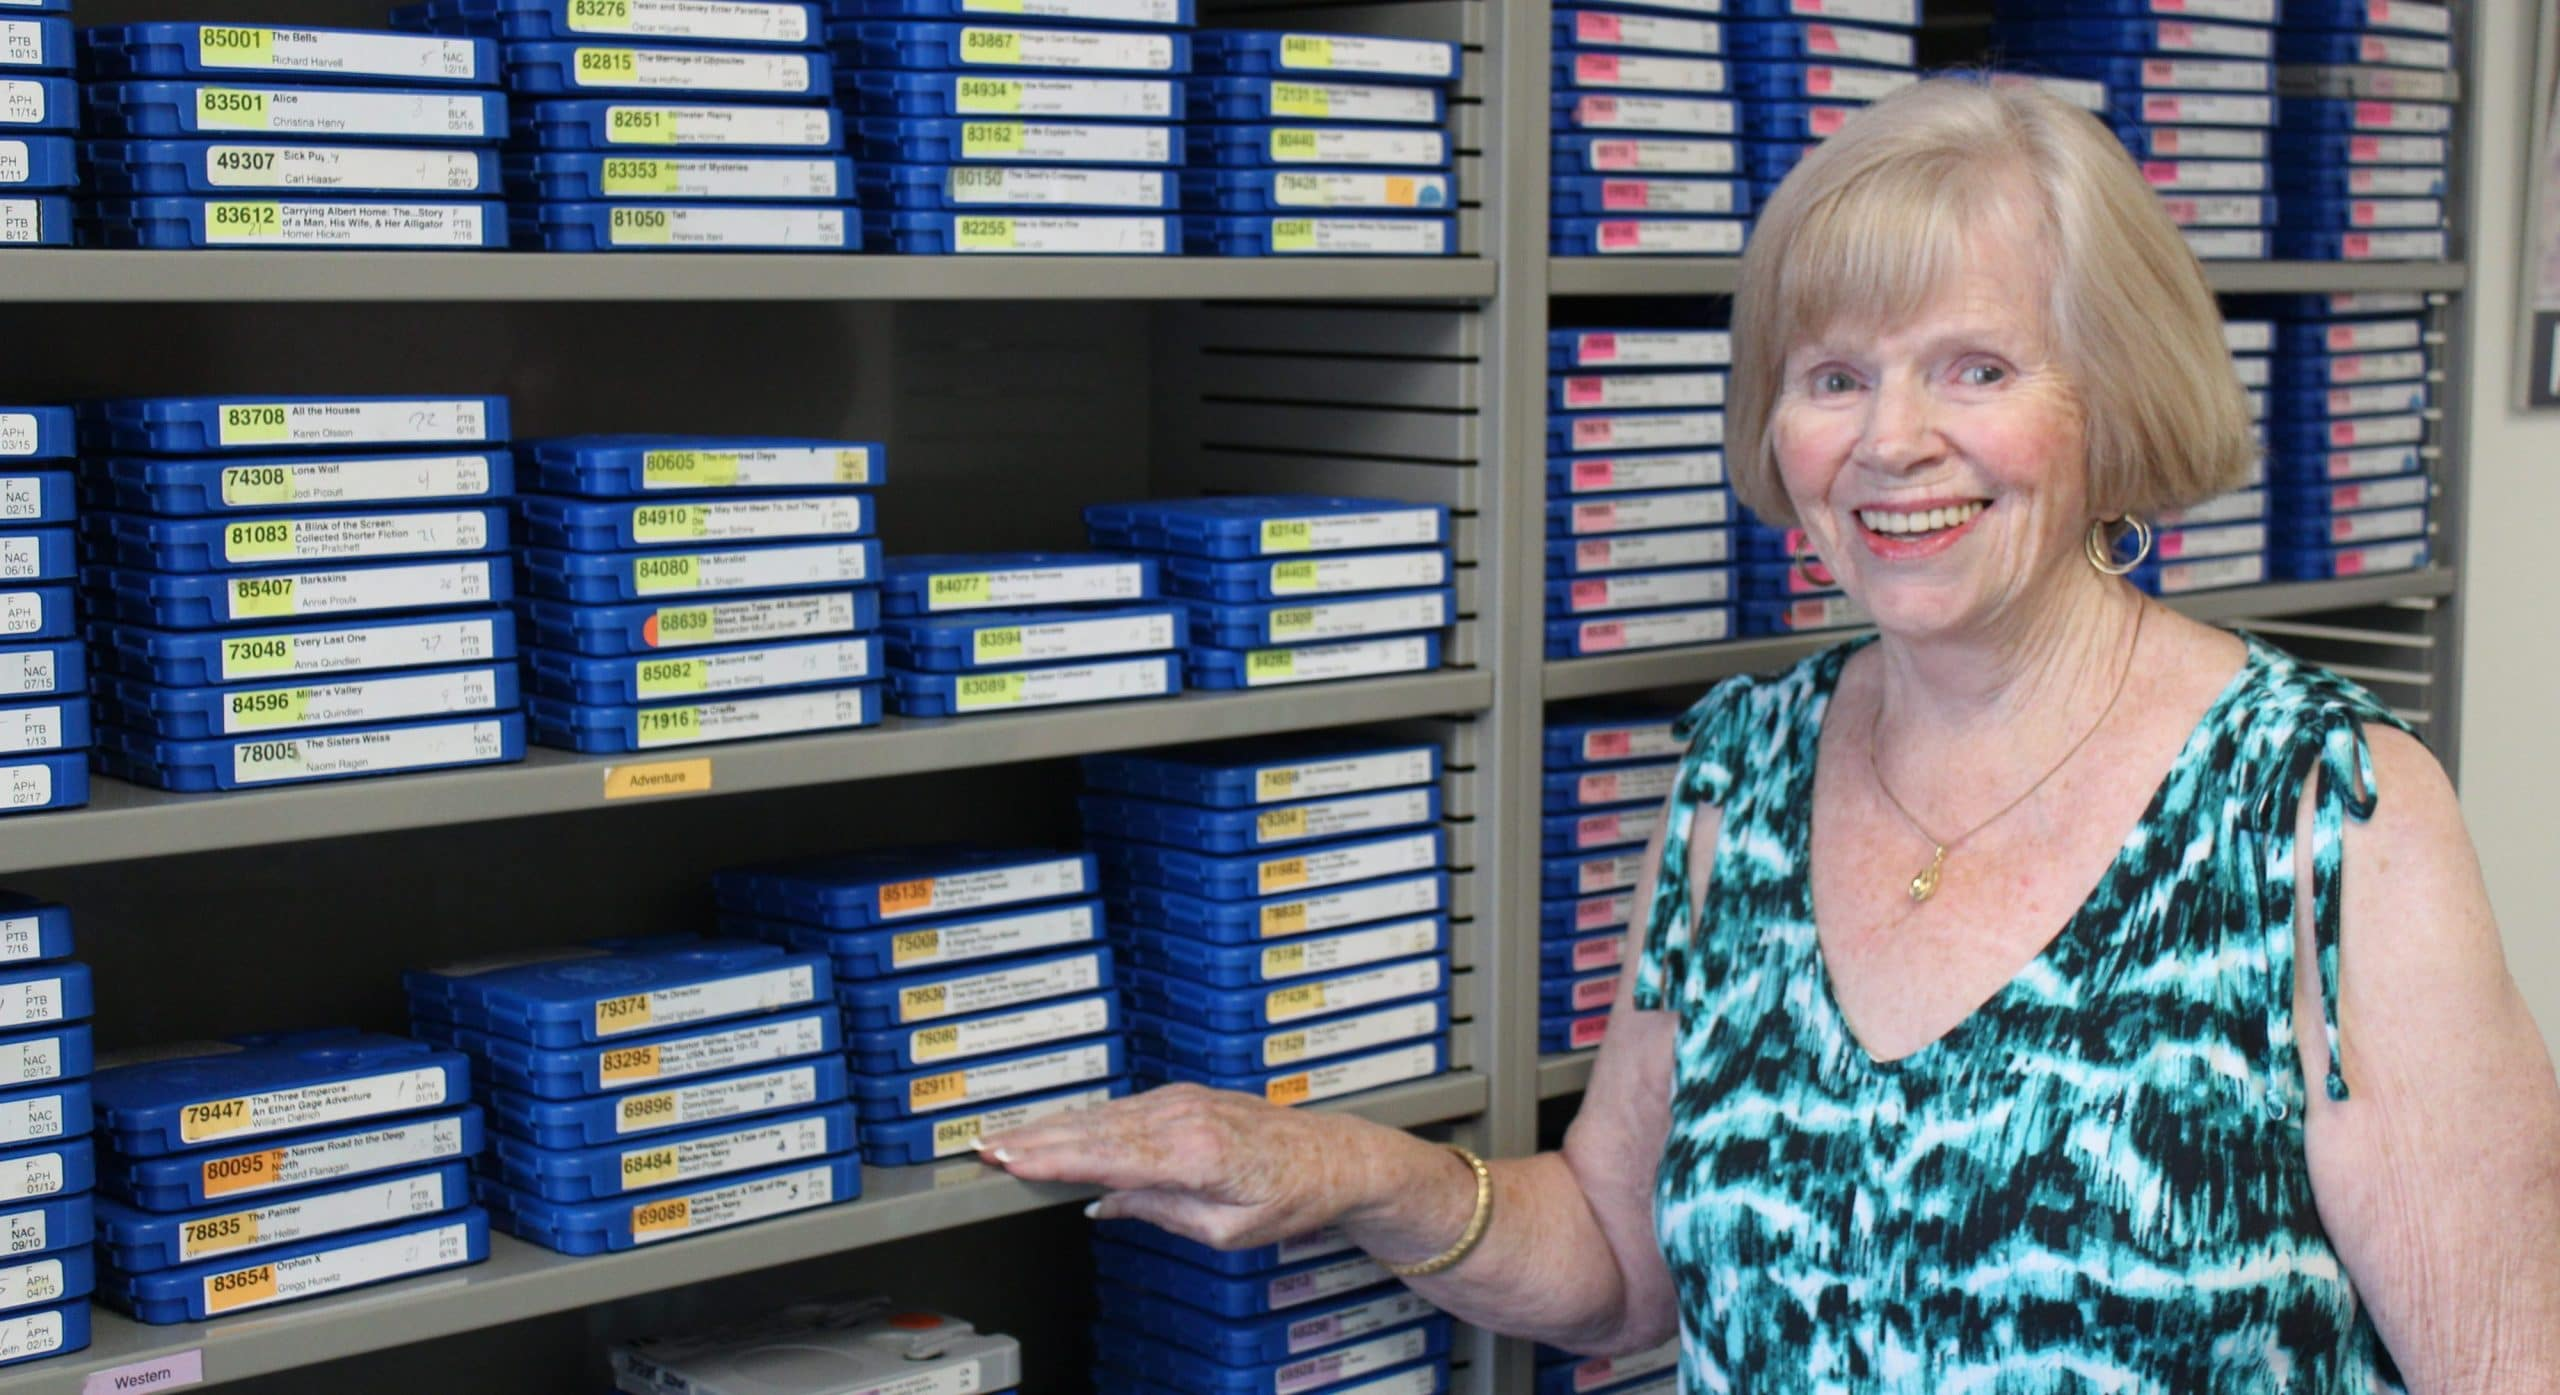 Cathy M stands infront of a bookshelf at Laguna Hills Center, her hand is resting near some audio books and she is smiling